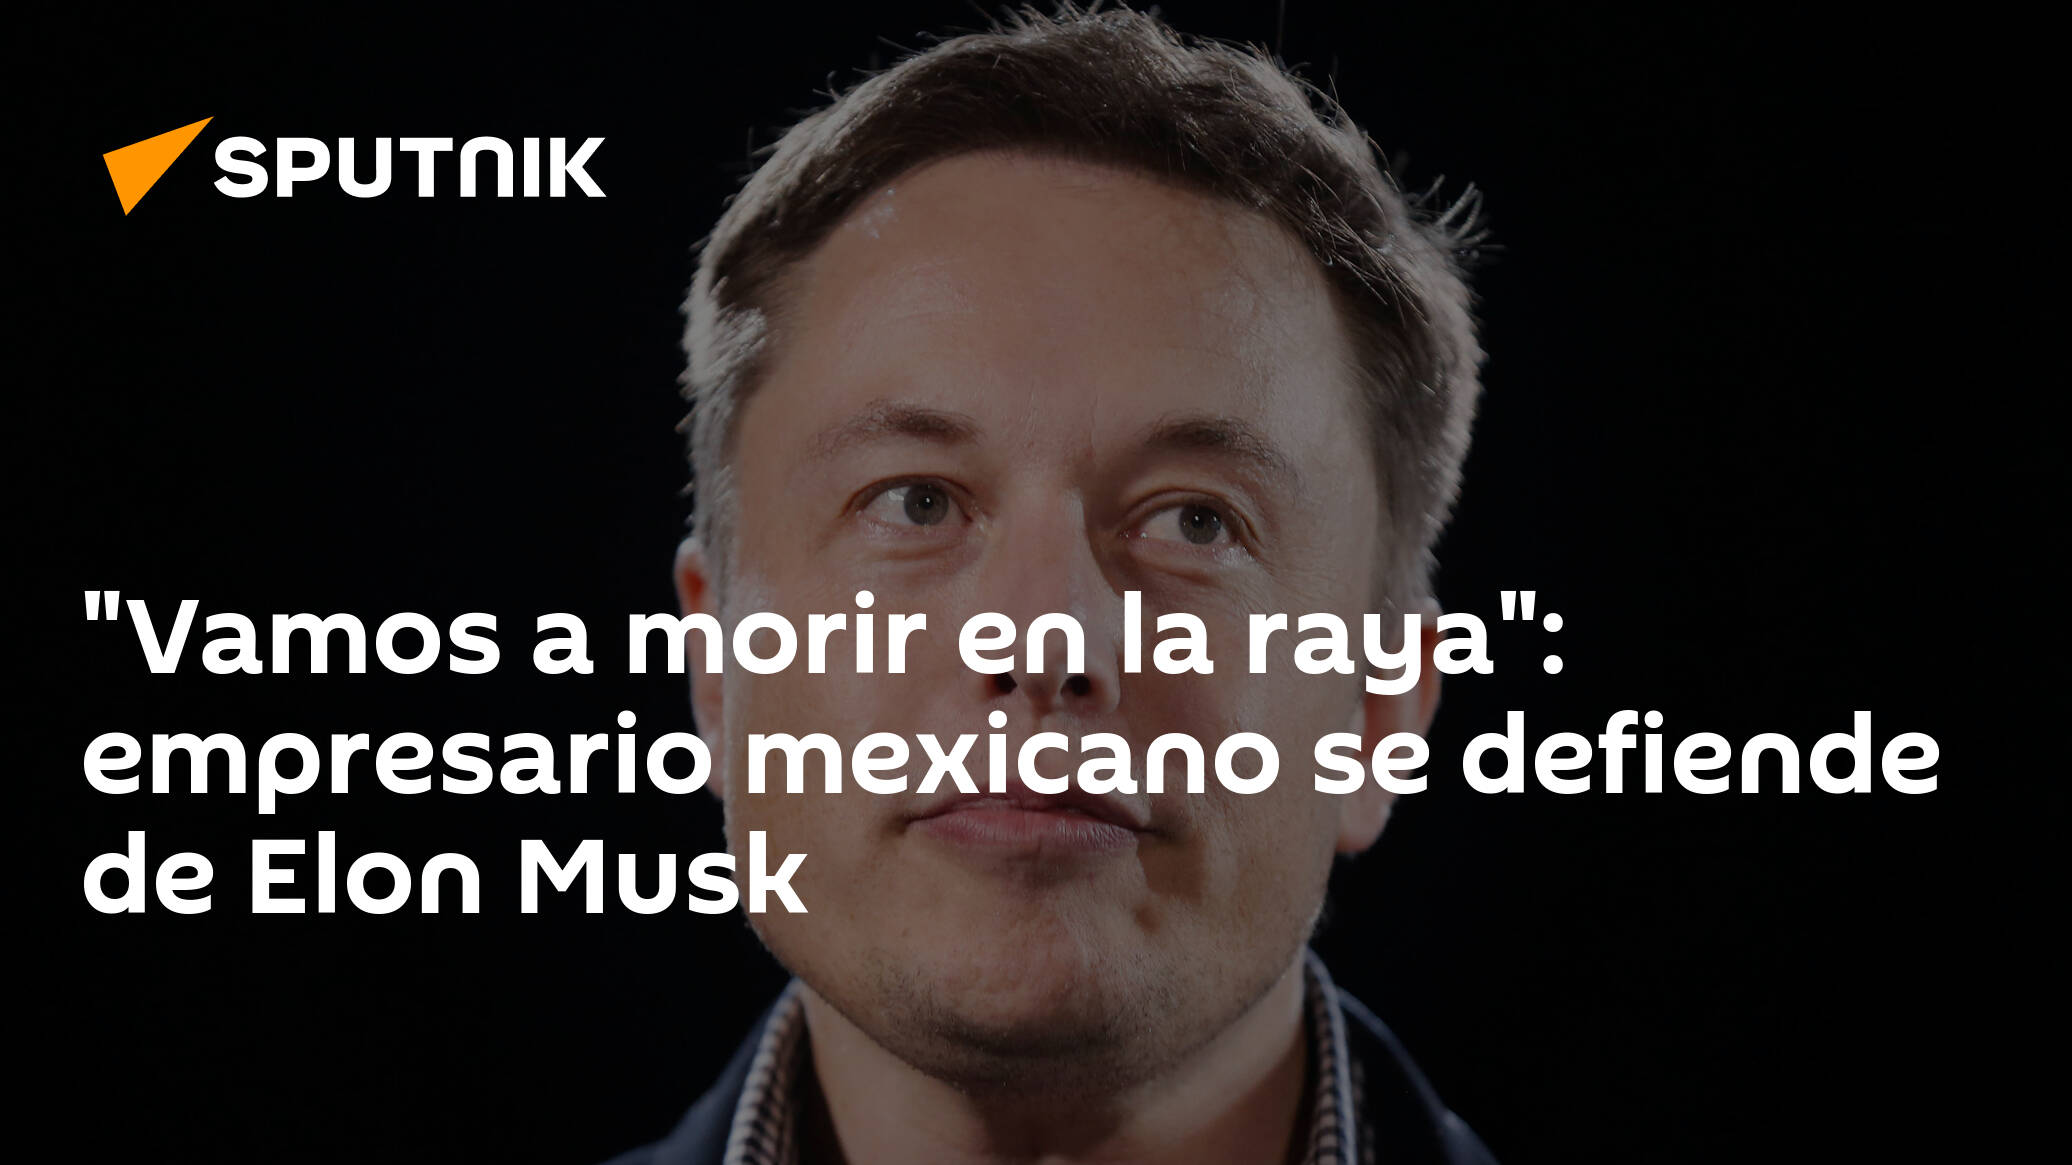 'We're going to die at the stake': Mexican businessman defends himself against Elon Musk